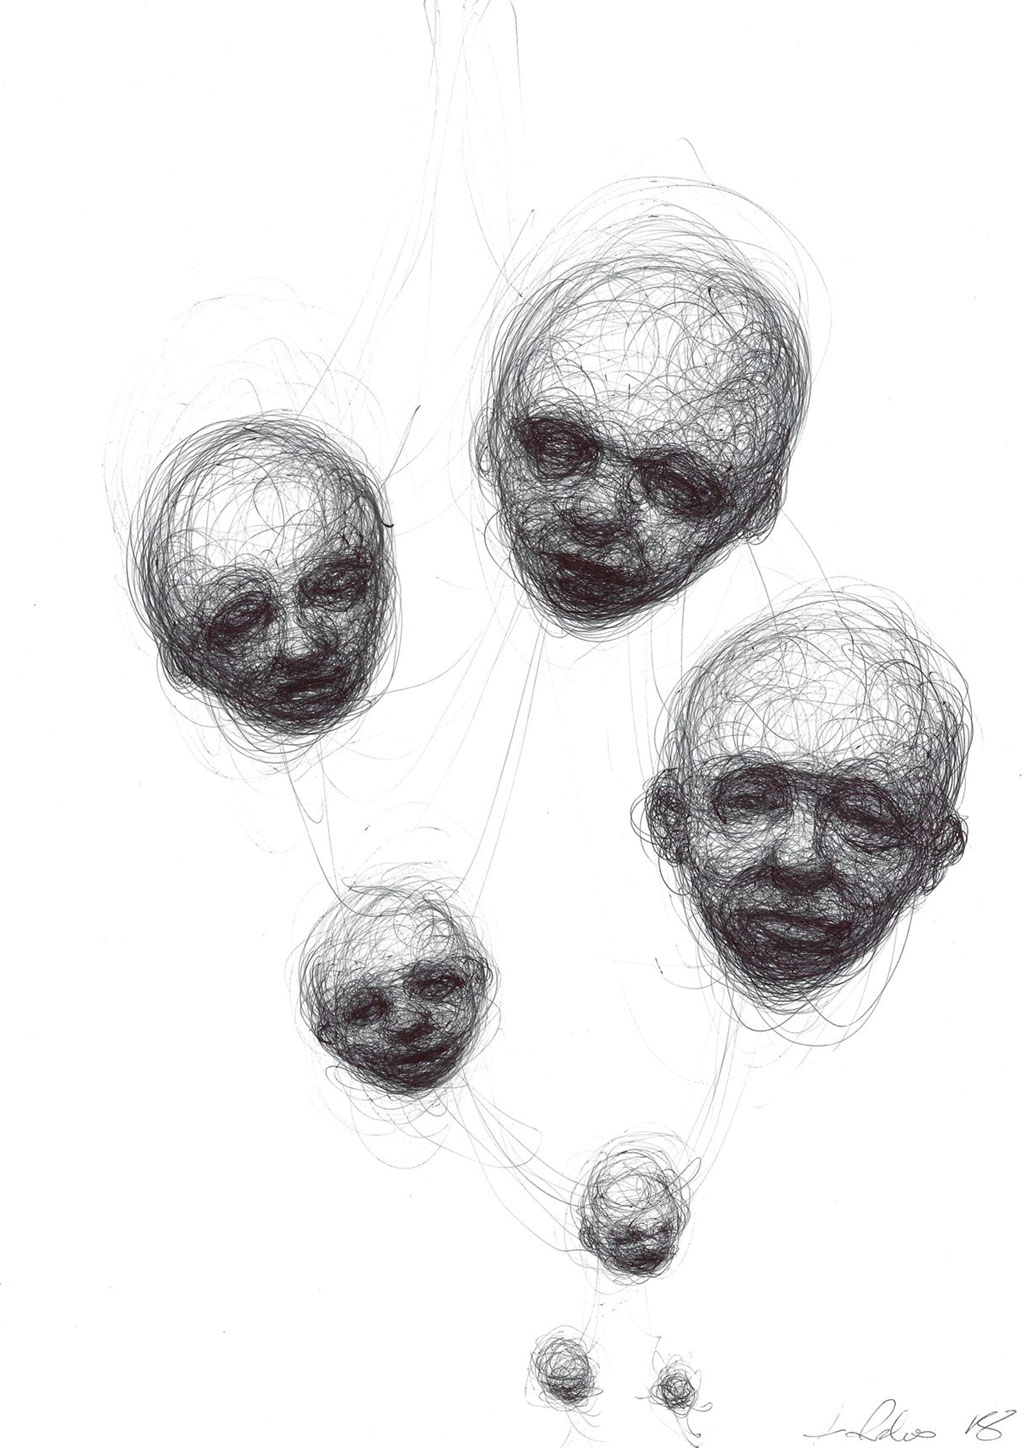 Ballpoint pen drawing of 7 heads getting larger as they reach the top of the page